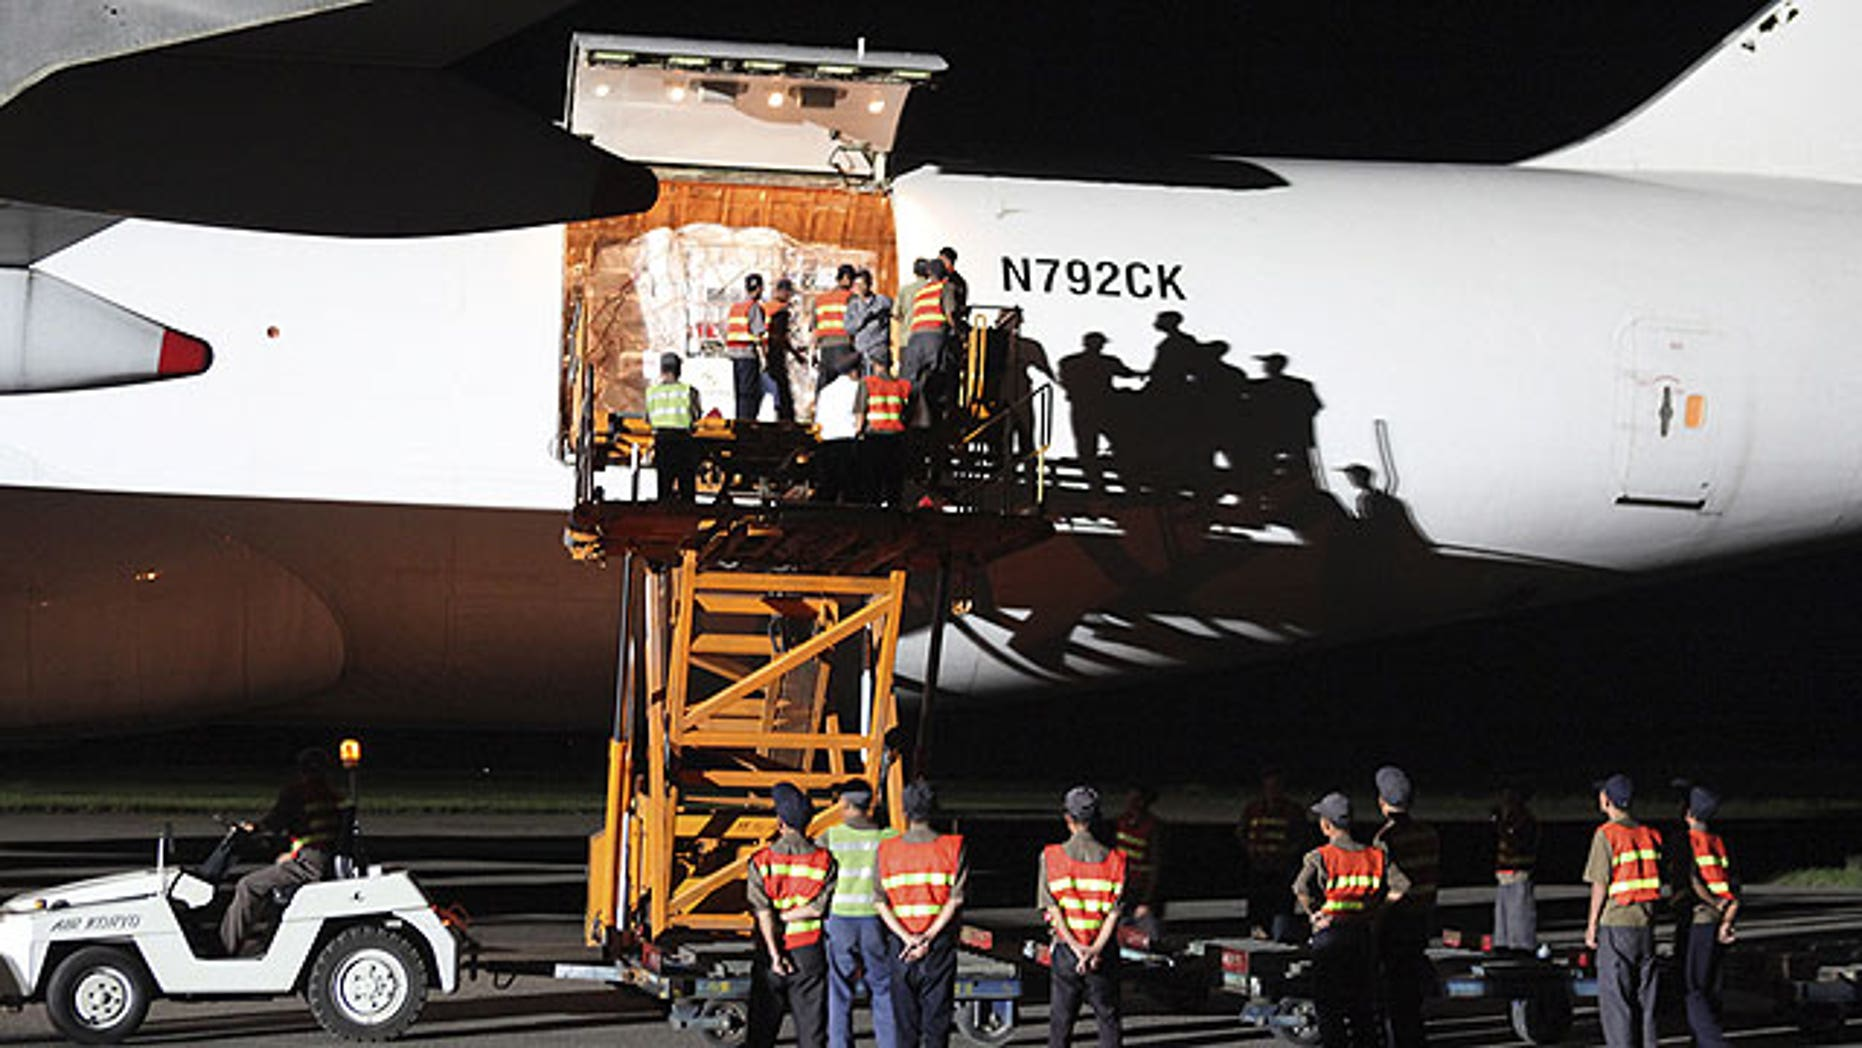 September 3: North Korean workers unload emergency aid sent from the United States from a plane upon arrival at Pyongyang airport, North Korea.